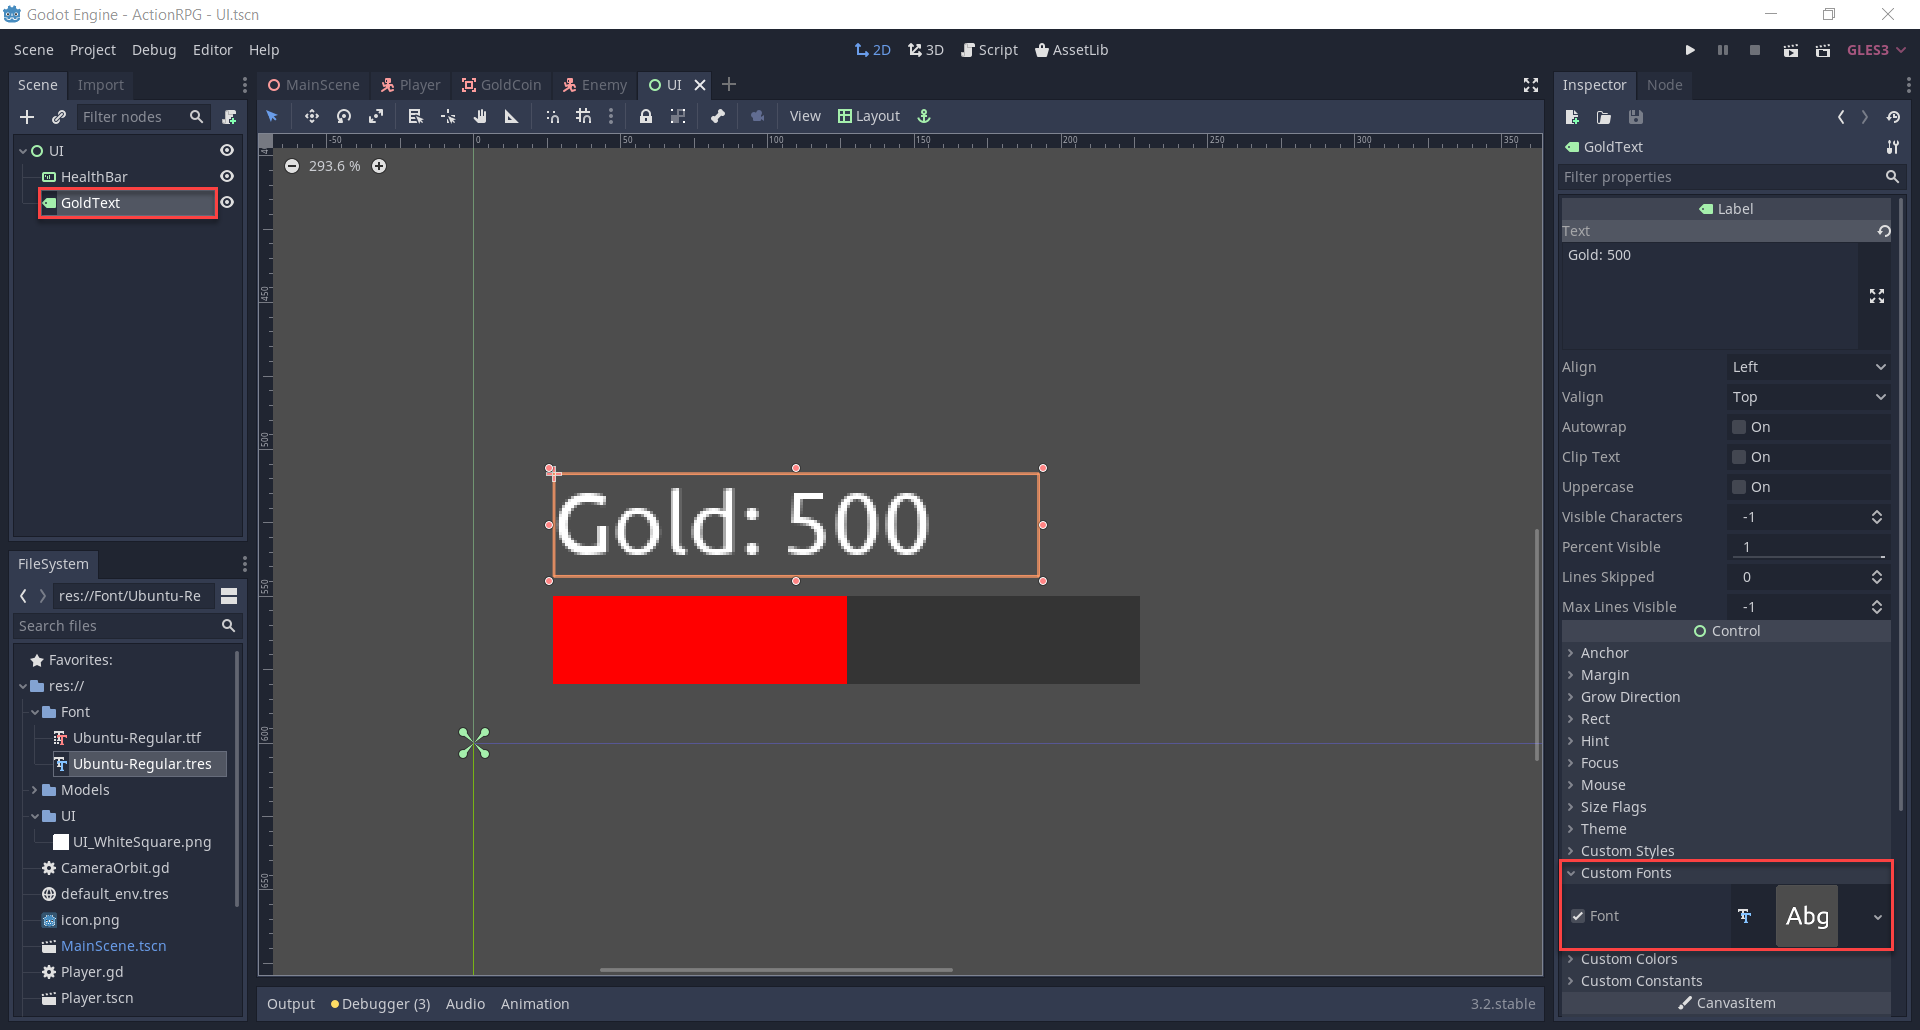 Godot UI text for gold amount